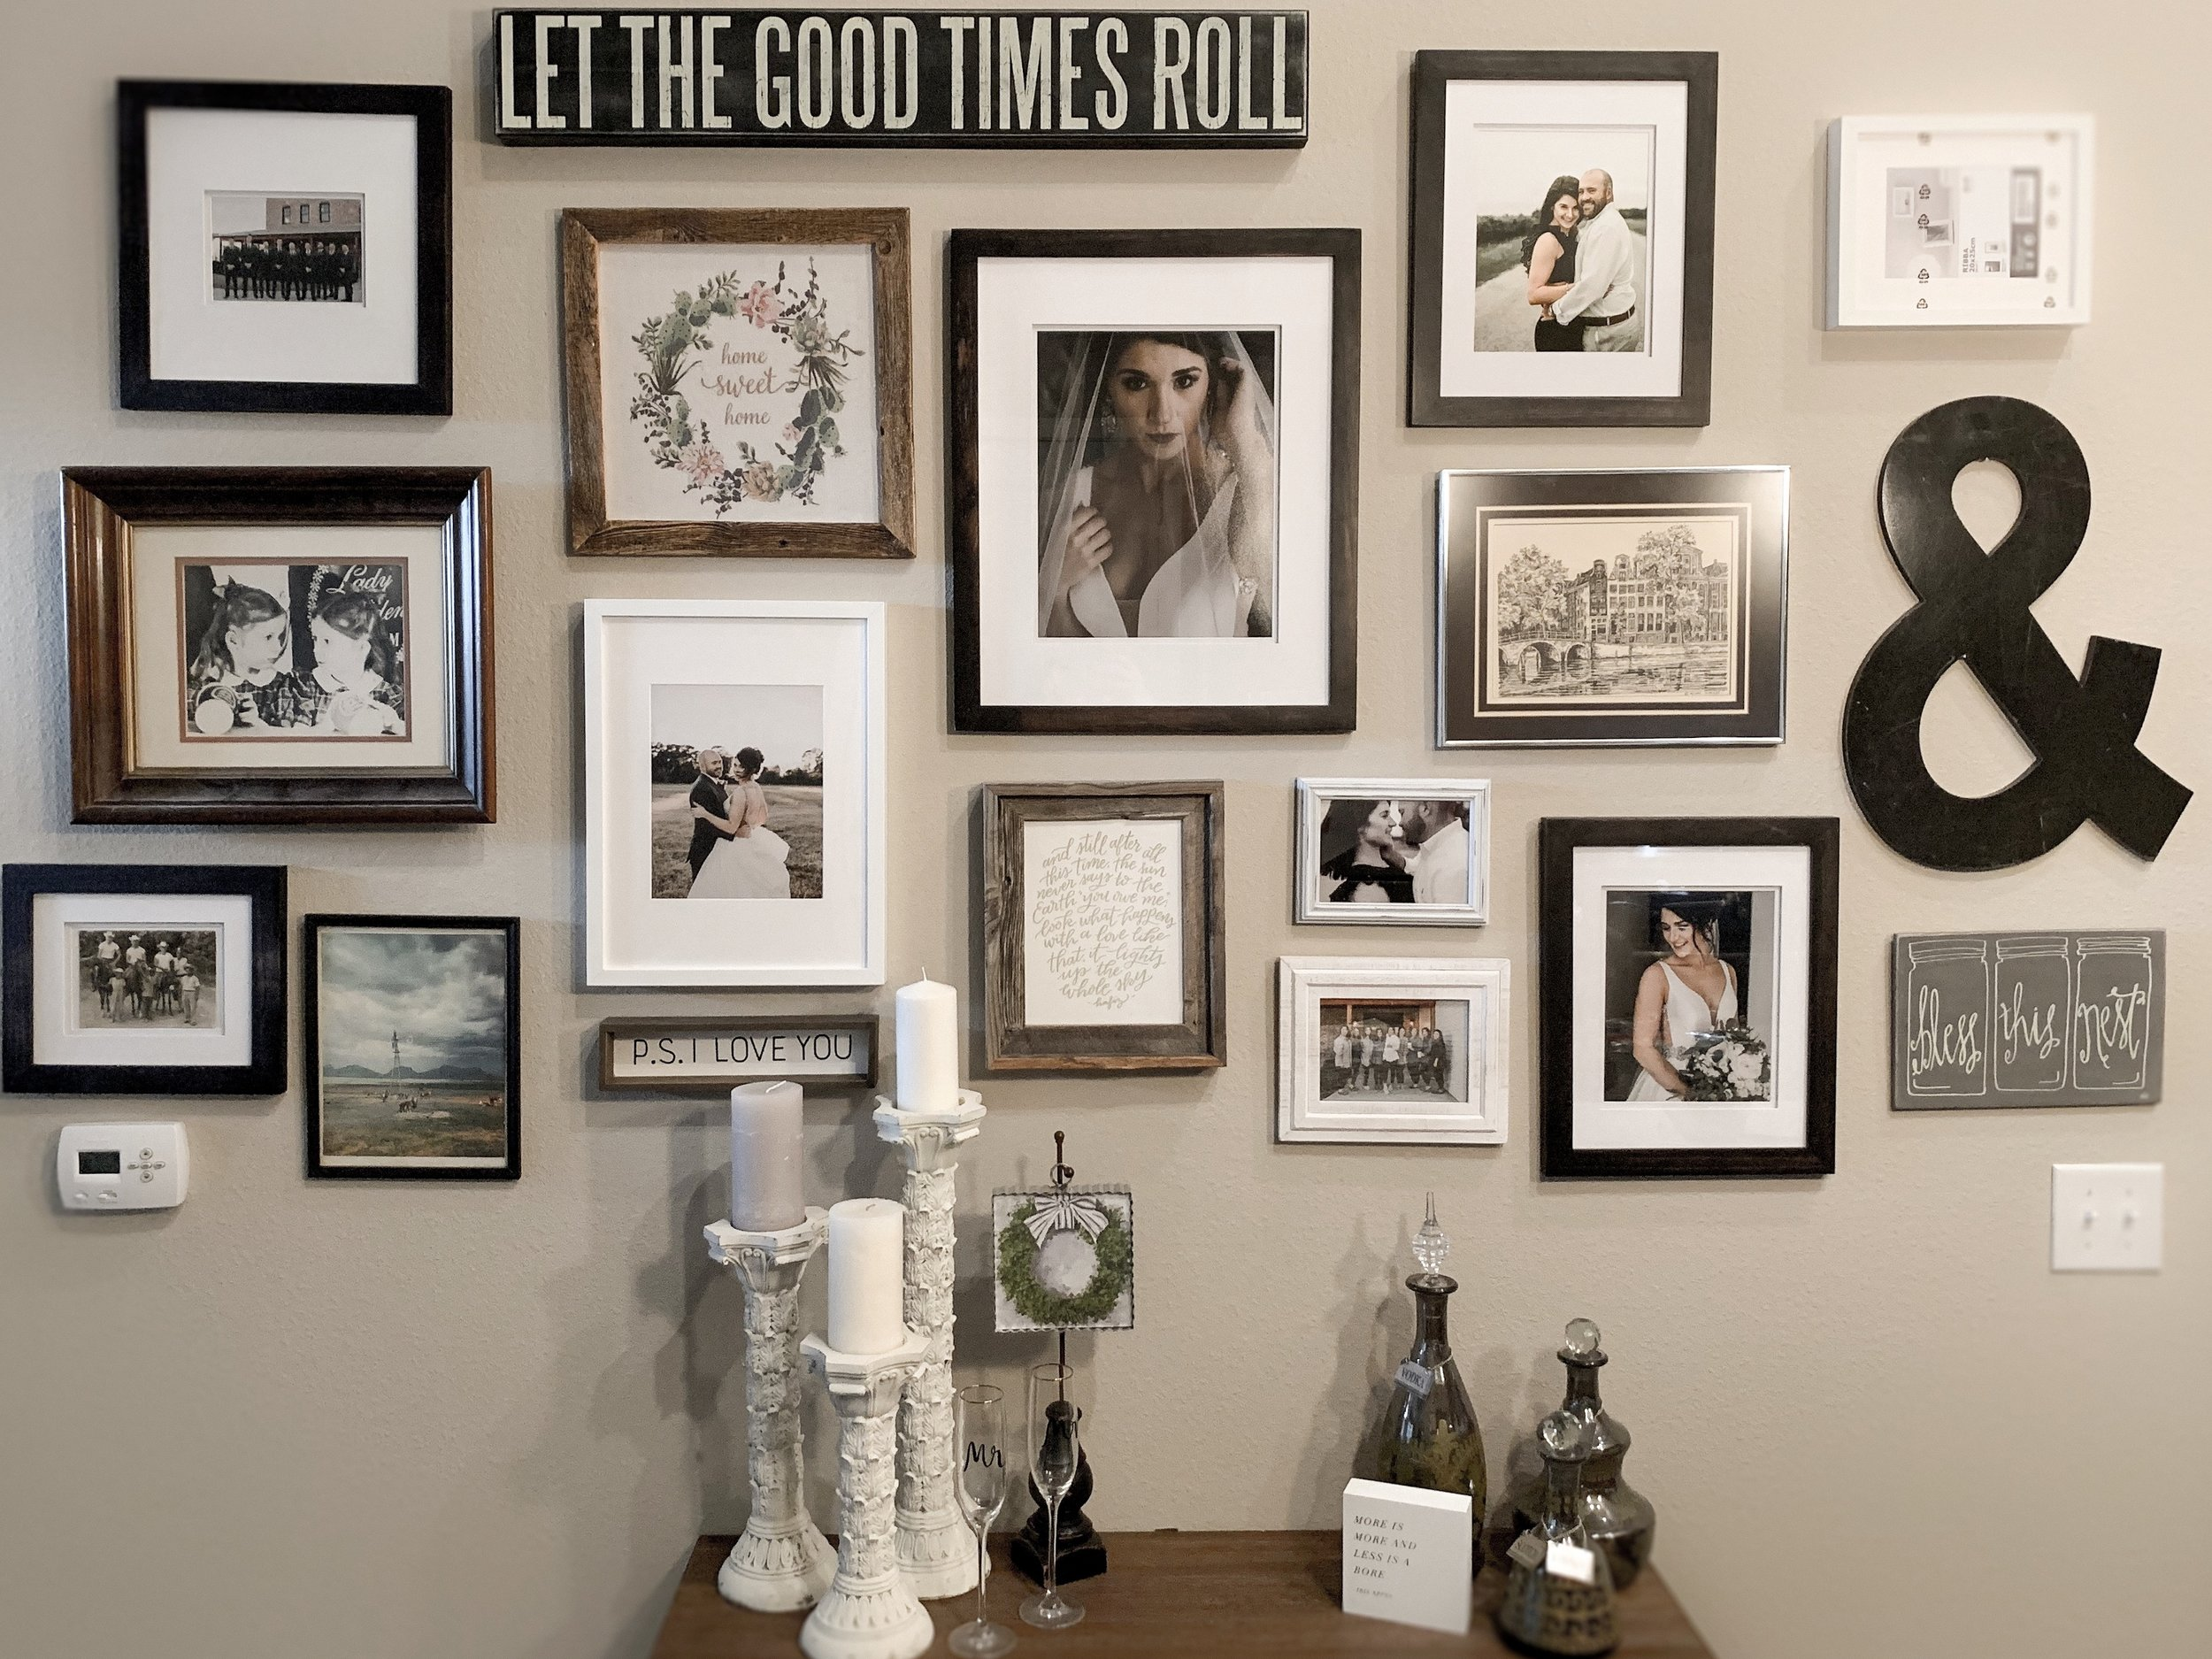 Brenna's gallery wall is all about her and JT and their lives together now!